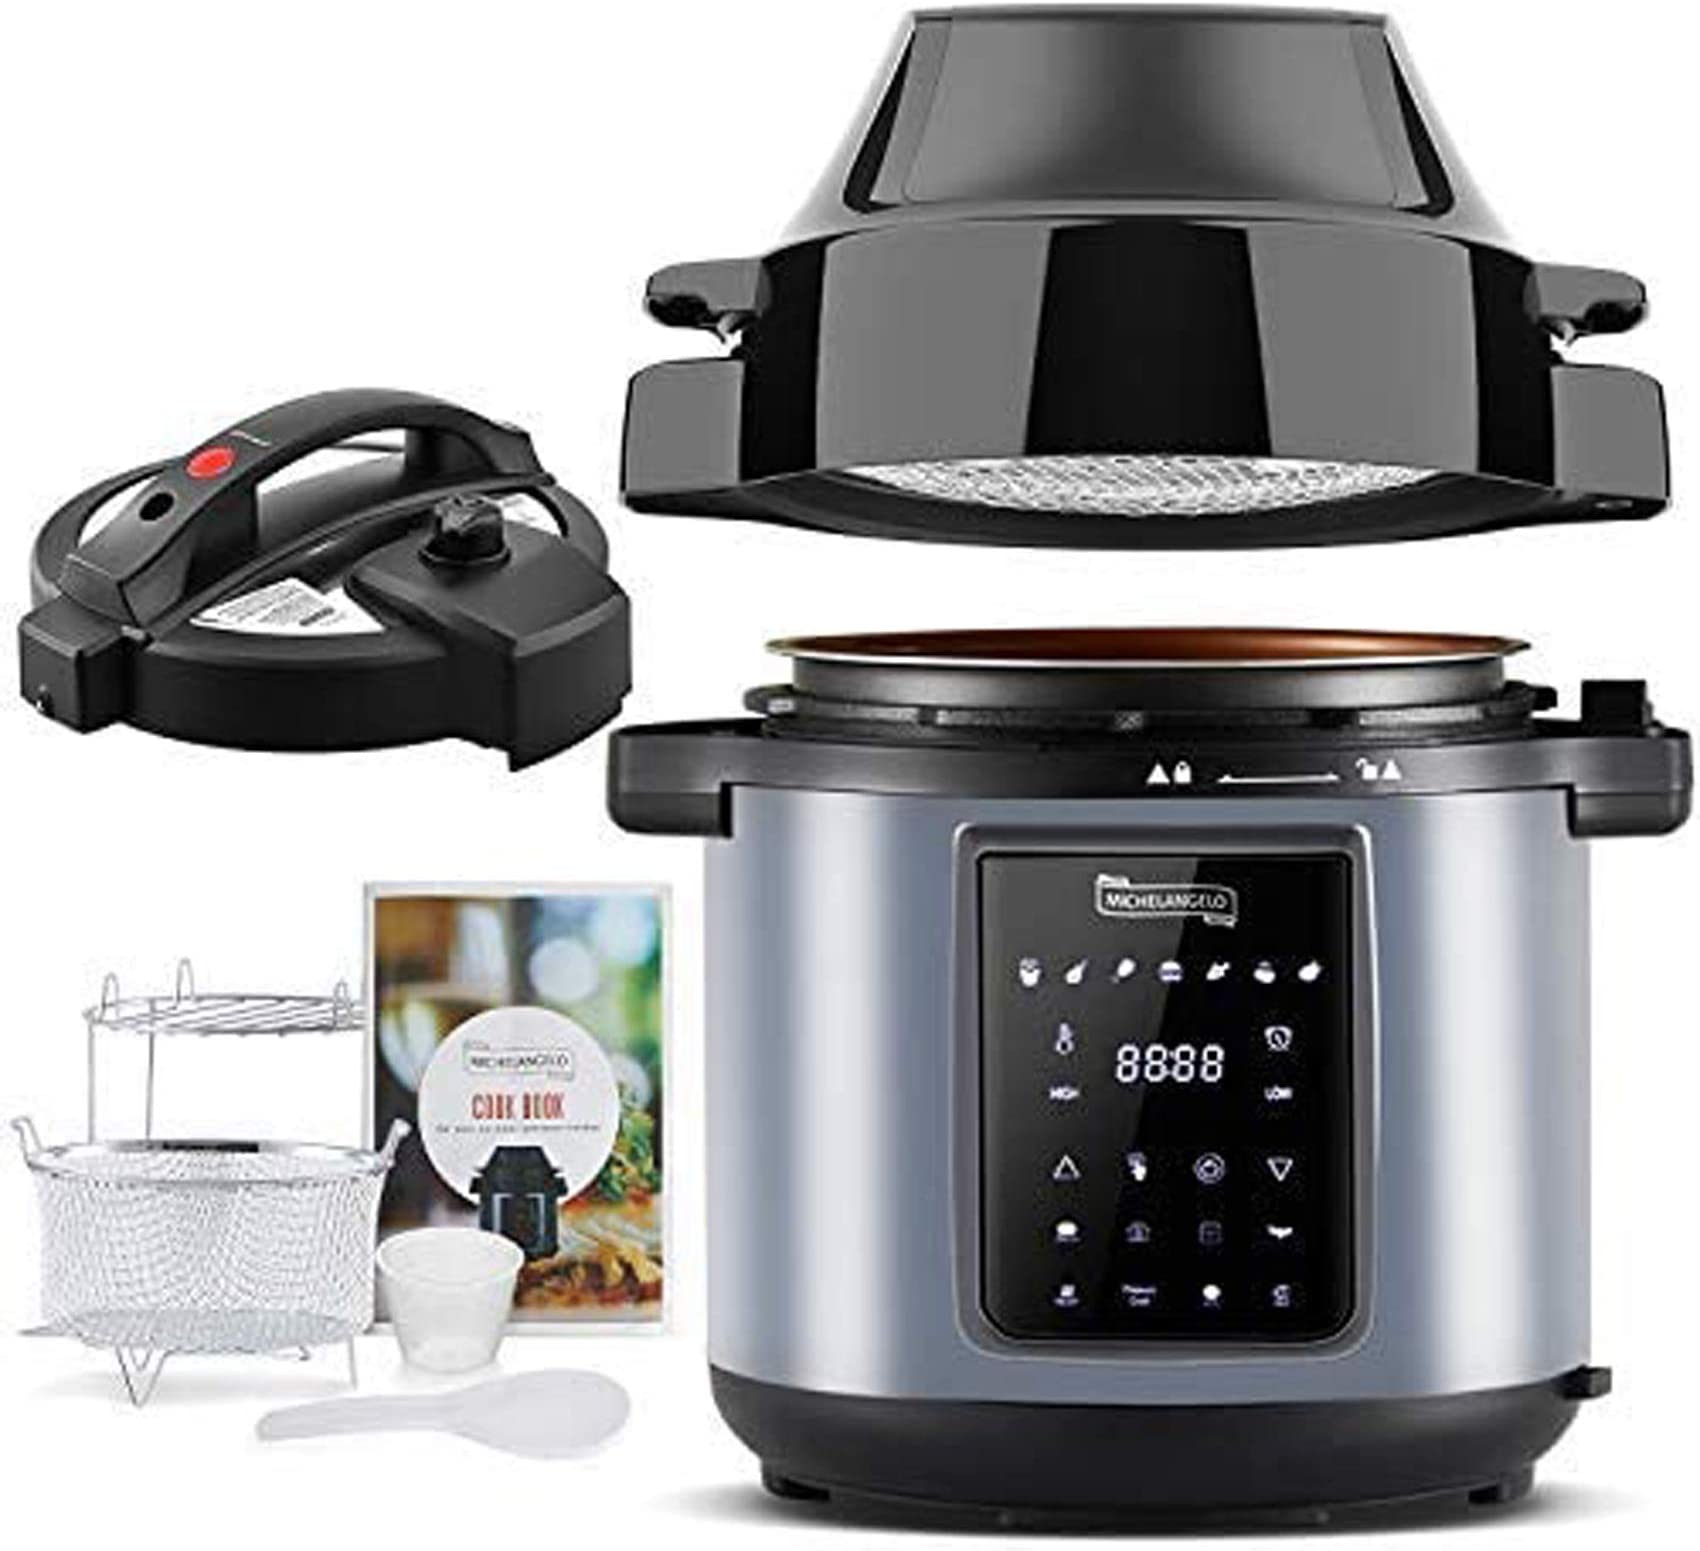 MICHELANGELO 6.5 QT Pressure Cooker Air Fryer Combo, All-in-1 Pressure Fryer with Two Detachable Lids, Steamer Basket, Roast Rack And Free Recipe Book, Air Fryer Pressure Cooker Combo - Metallic Black